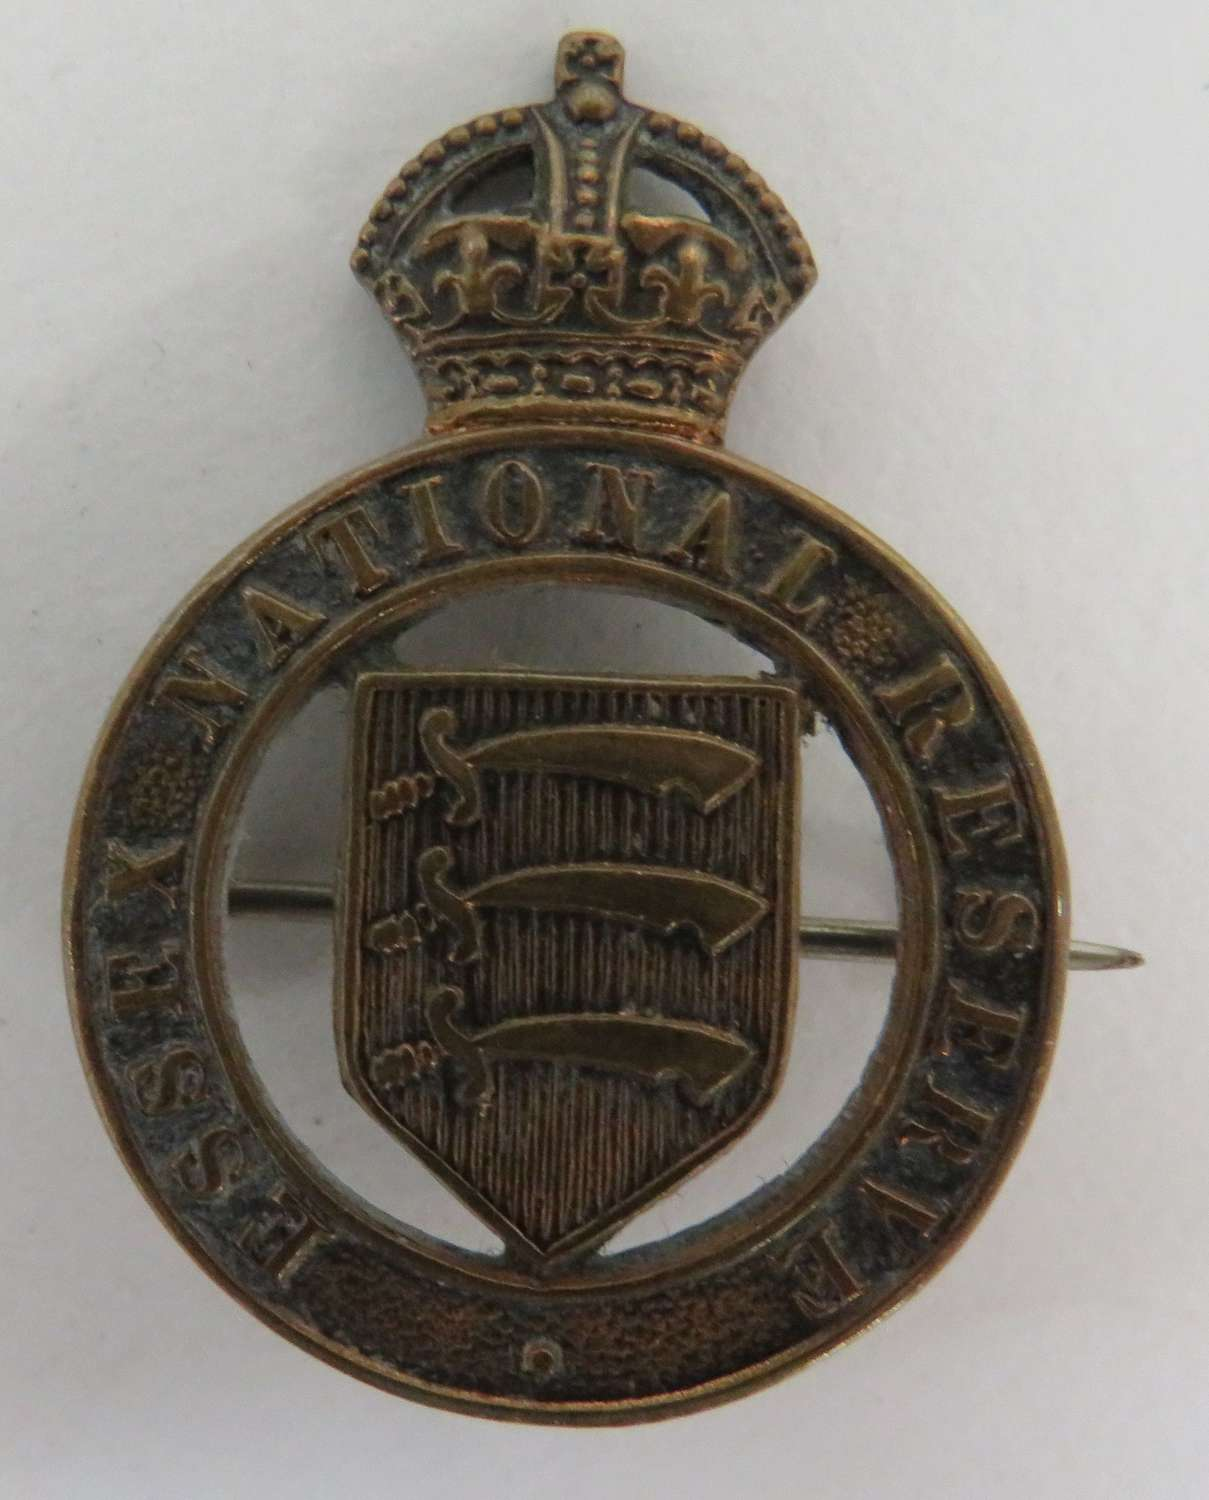 Essex National Reserve Lapel Badge